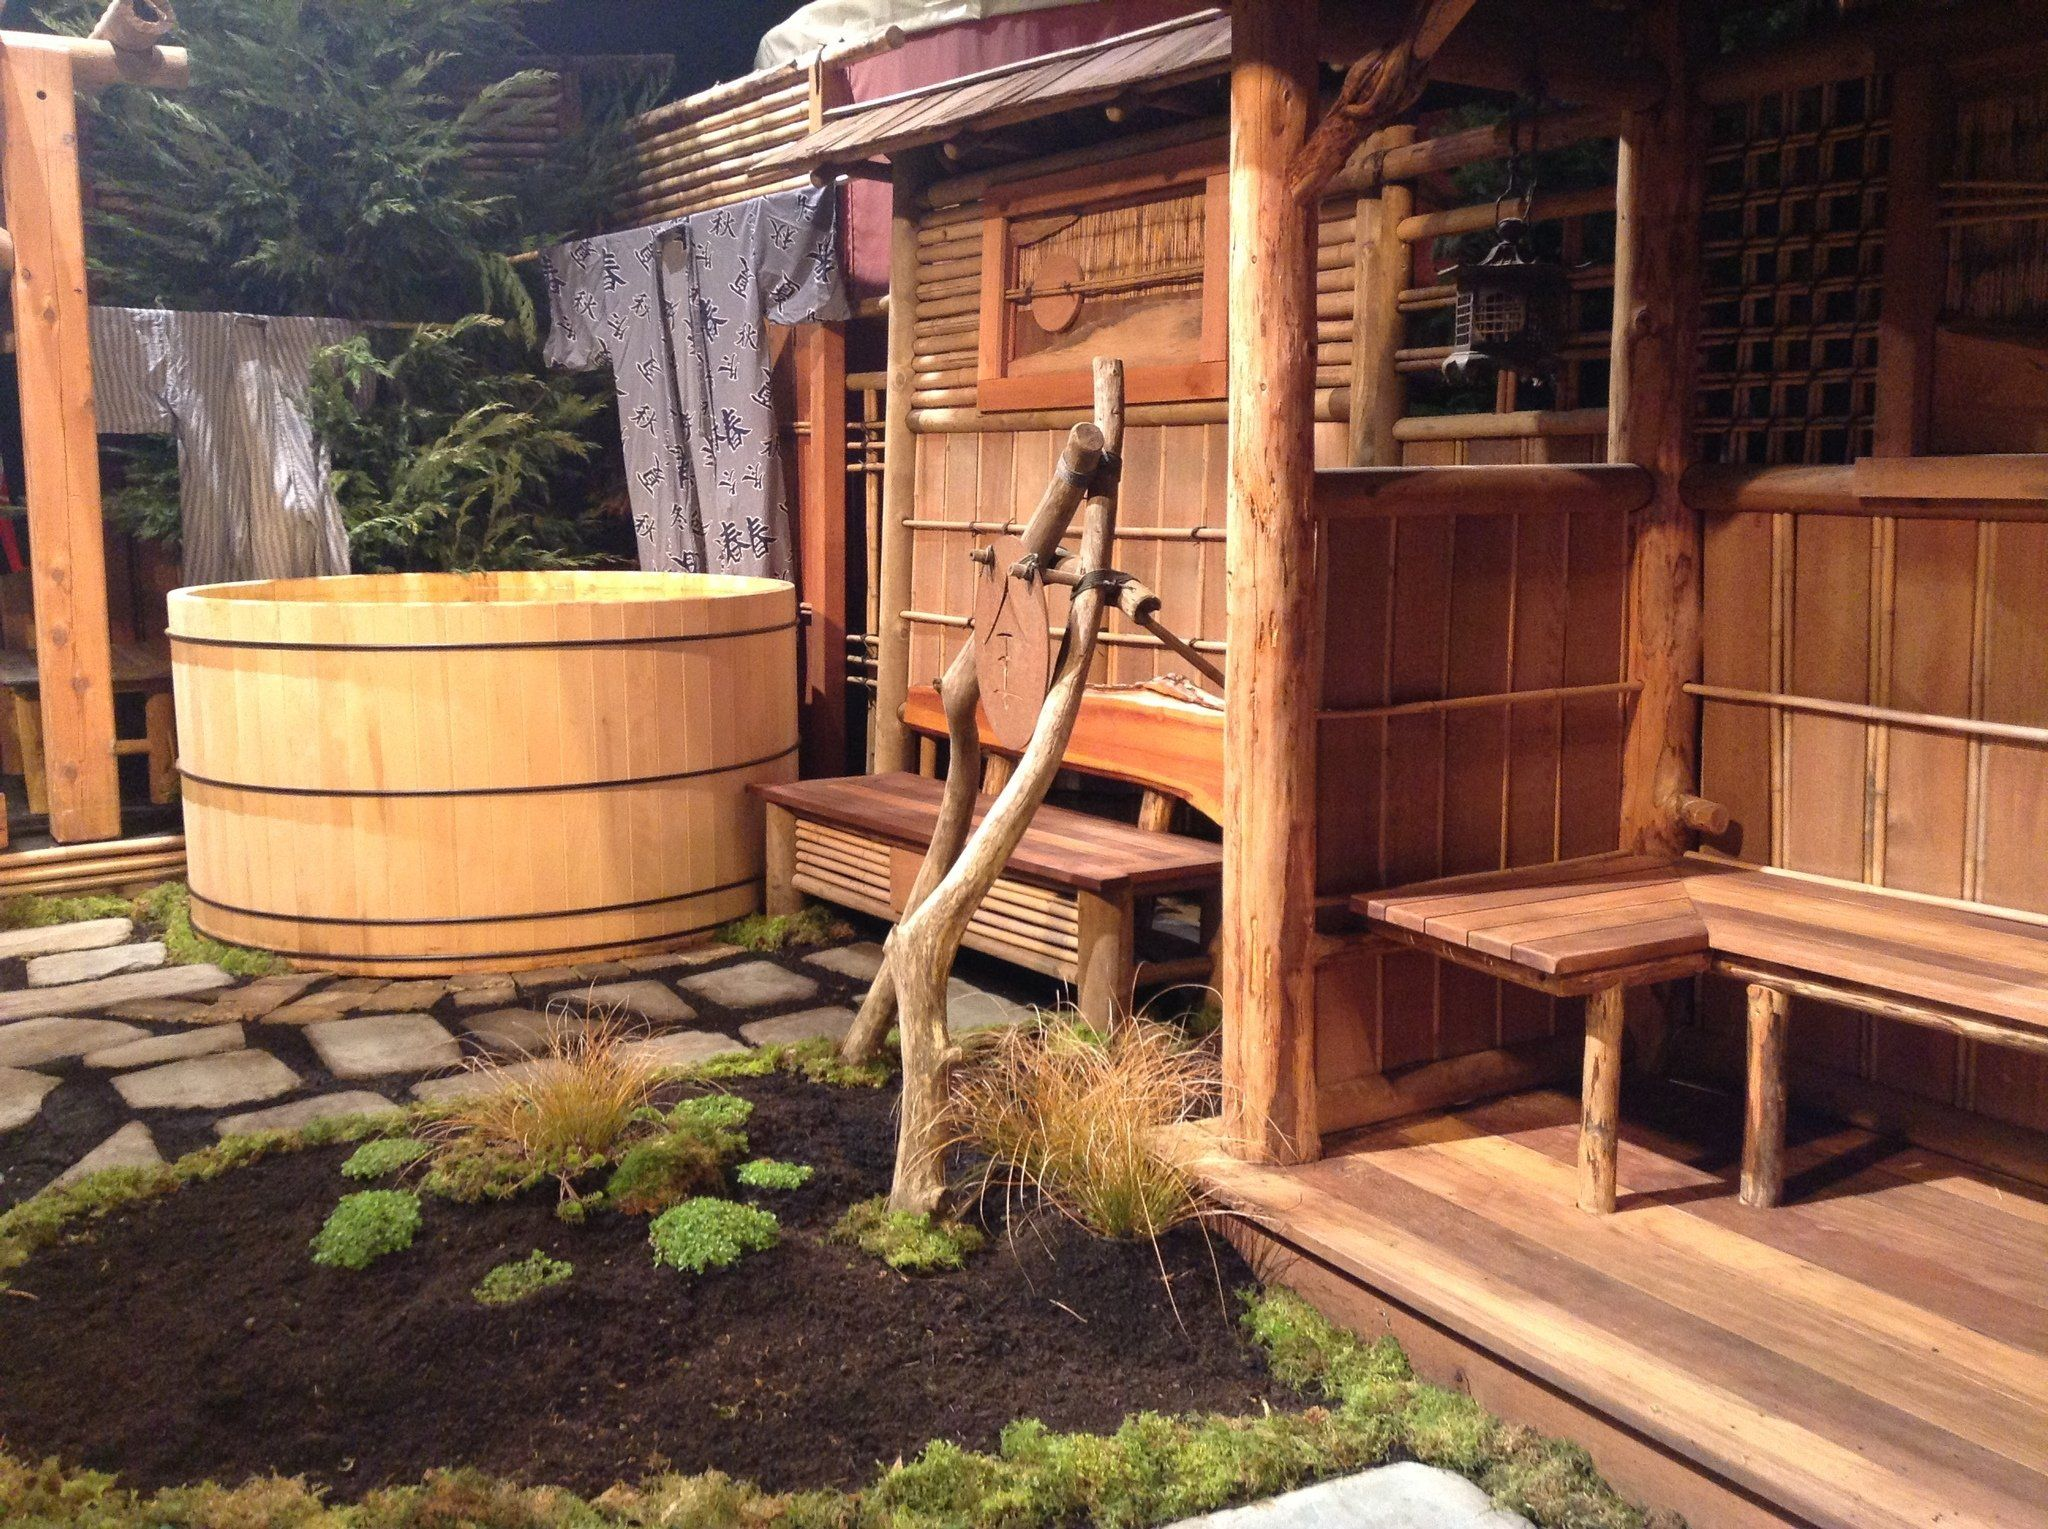 Wonderful Outdoor Japanese Bath With Wooden Benches Also Wooden